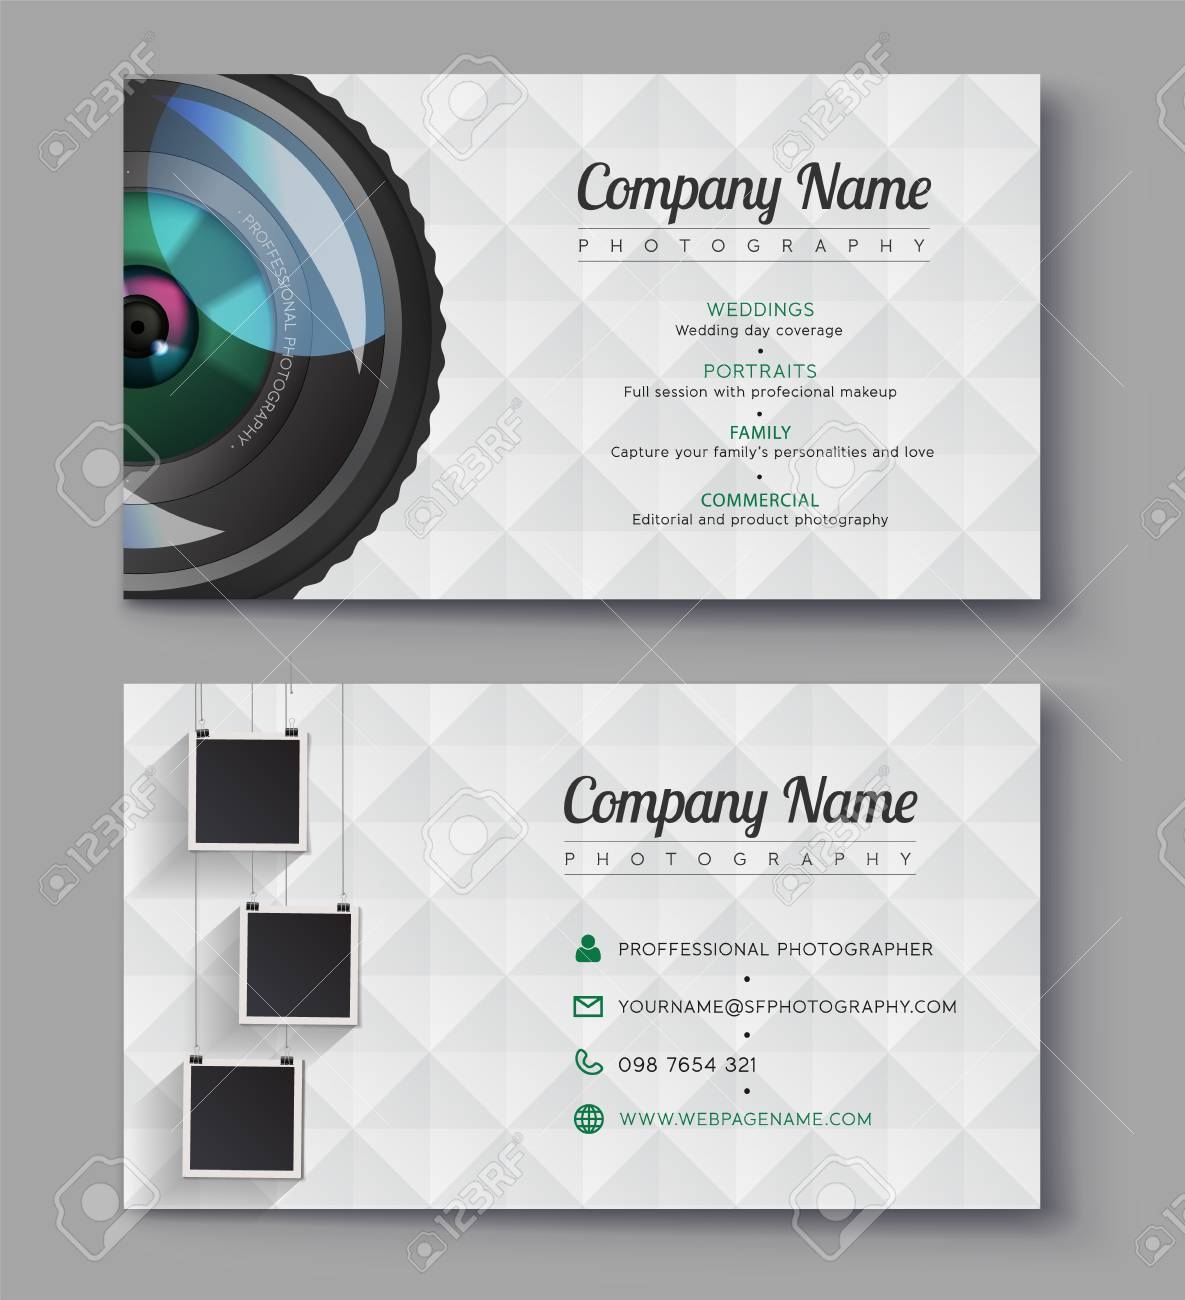 Photographer business card template design for photography studio photographer business card template design for photography studio ready presentation vector template illustrator reheart Choice Image